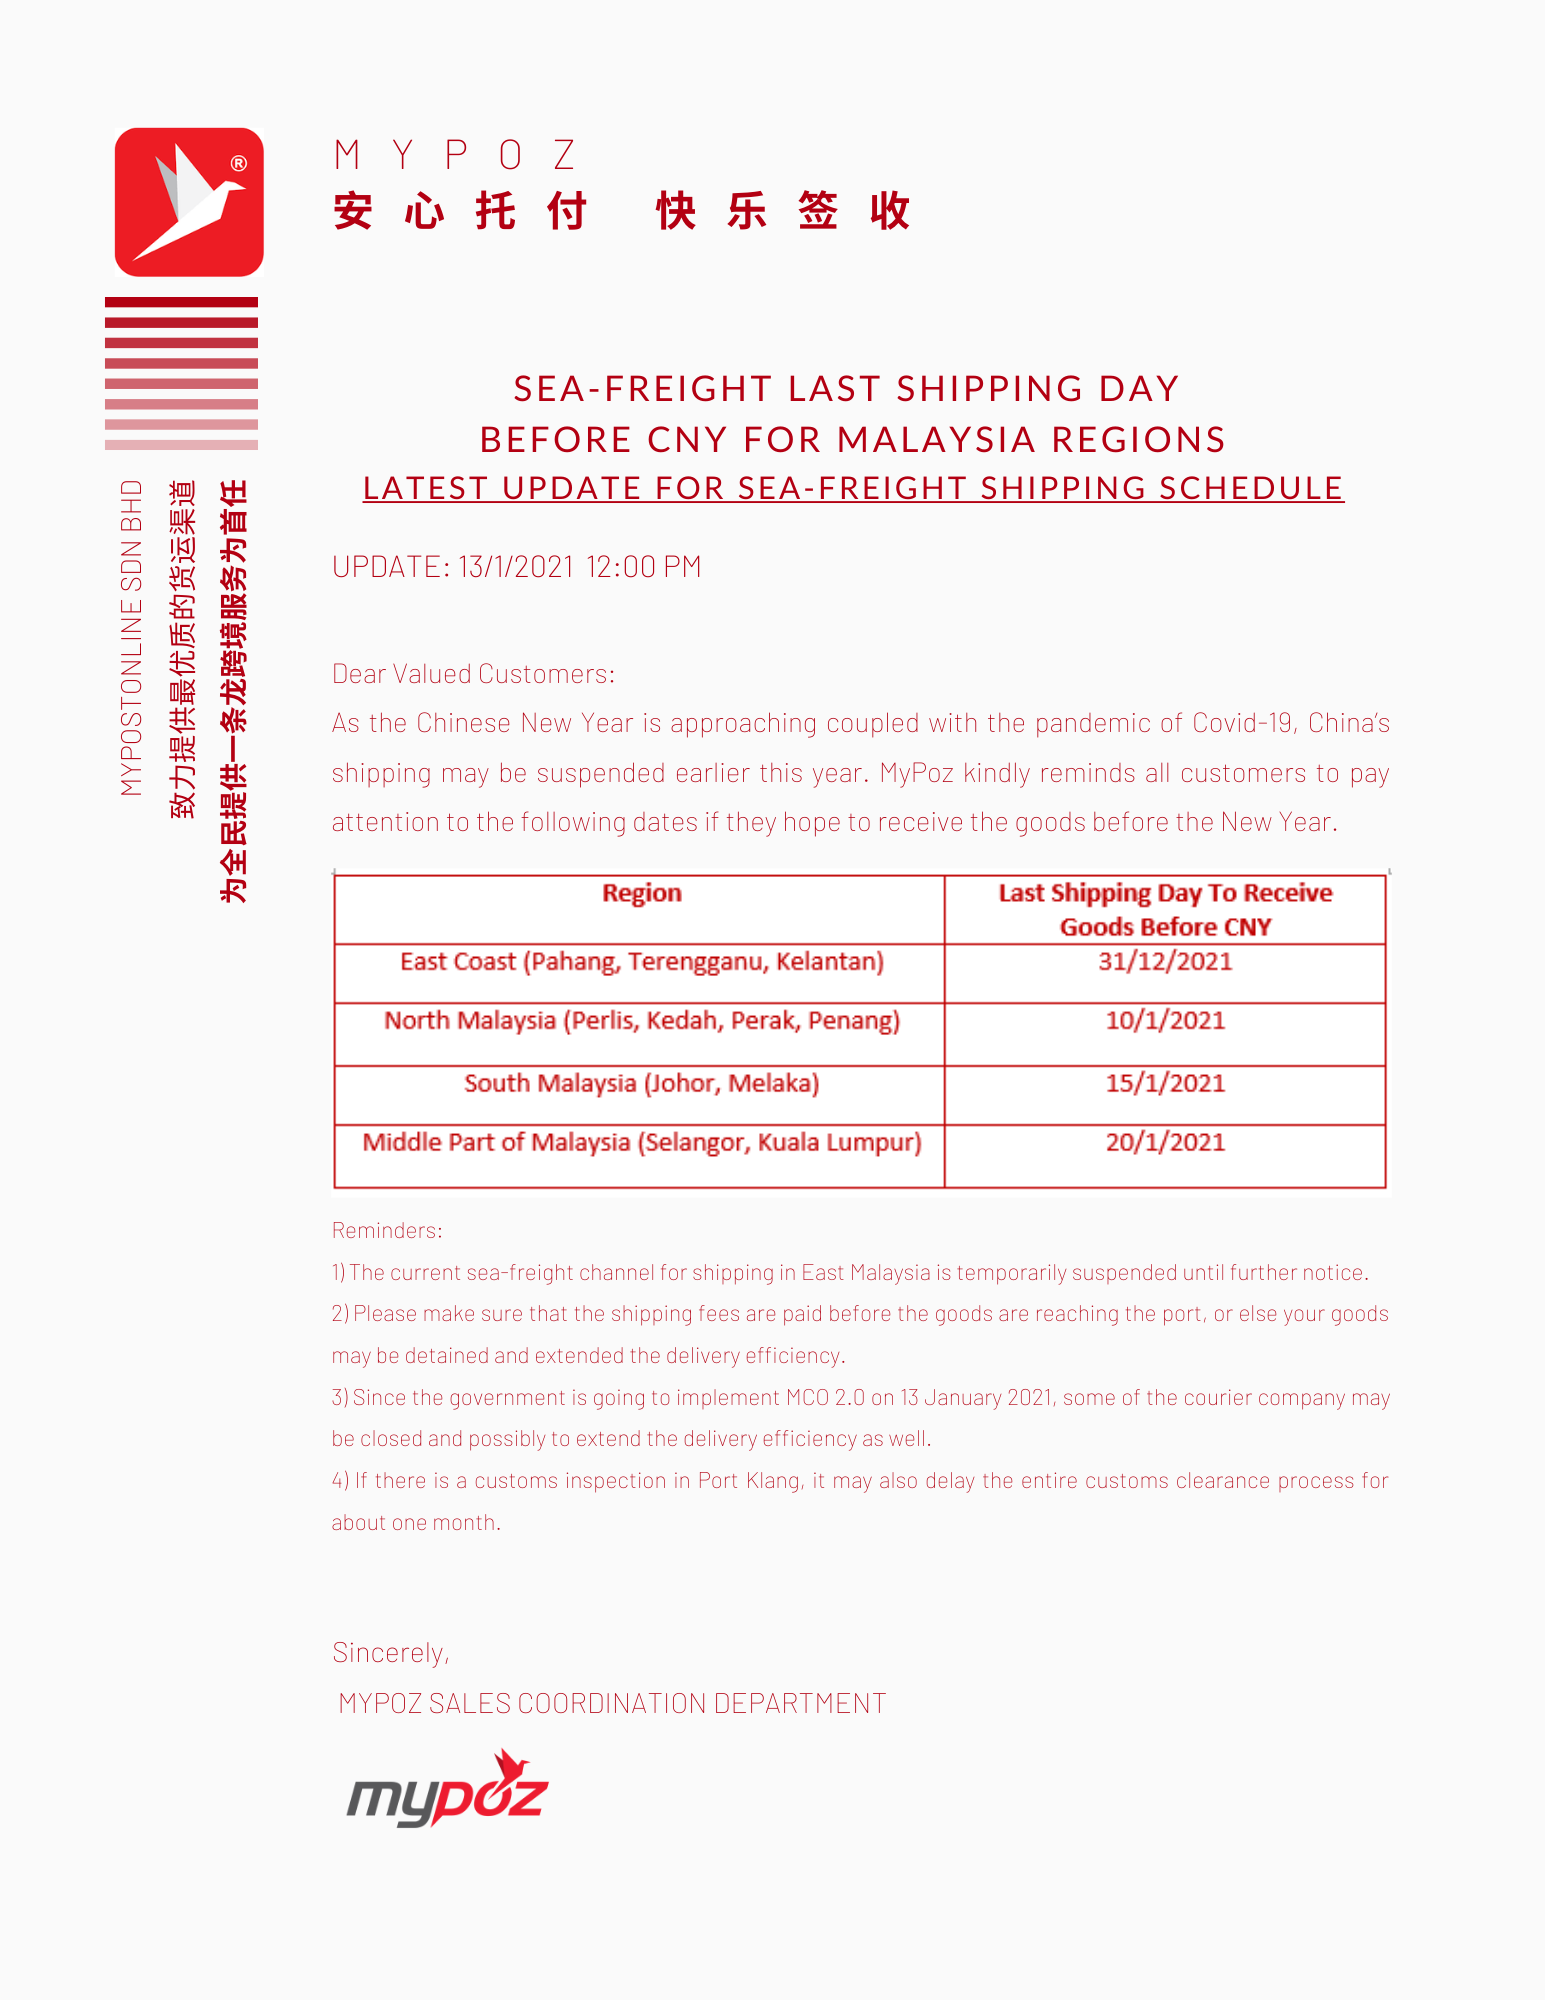 【NOTICE】SEA-FREIGHT LAST SHIPPING DAY BEFORE CNY FOR MALAYSIA REGIONS